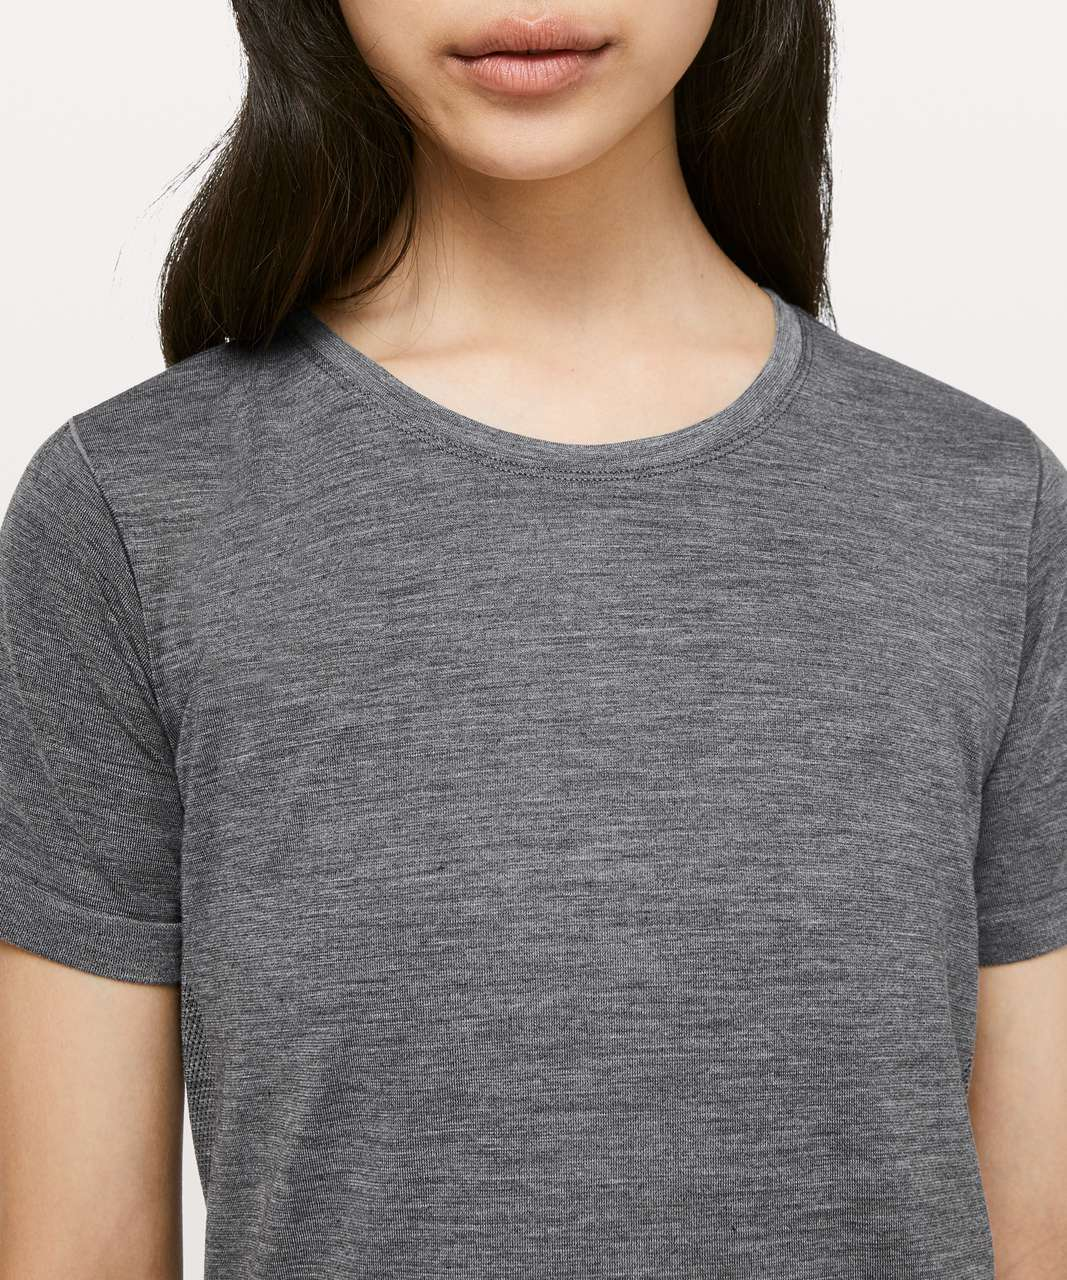 Lululemon Aerial Silk Relaxed Tee - Black / White